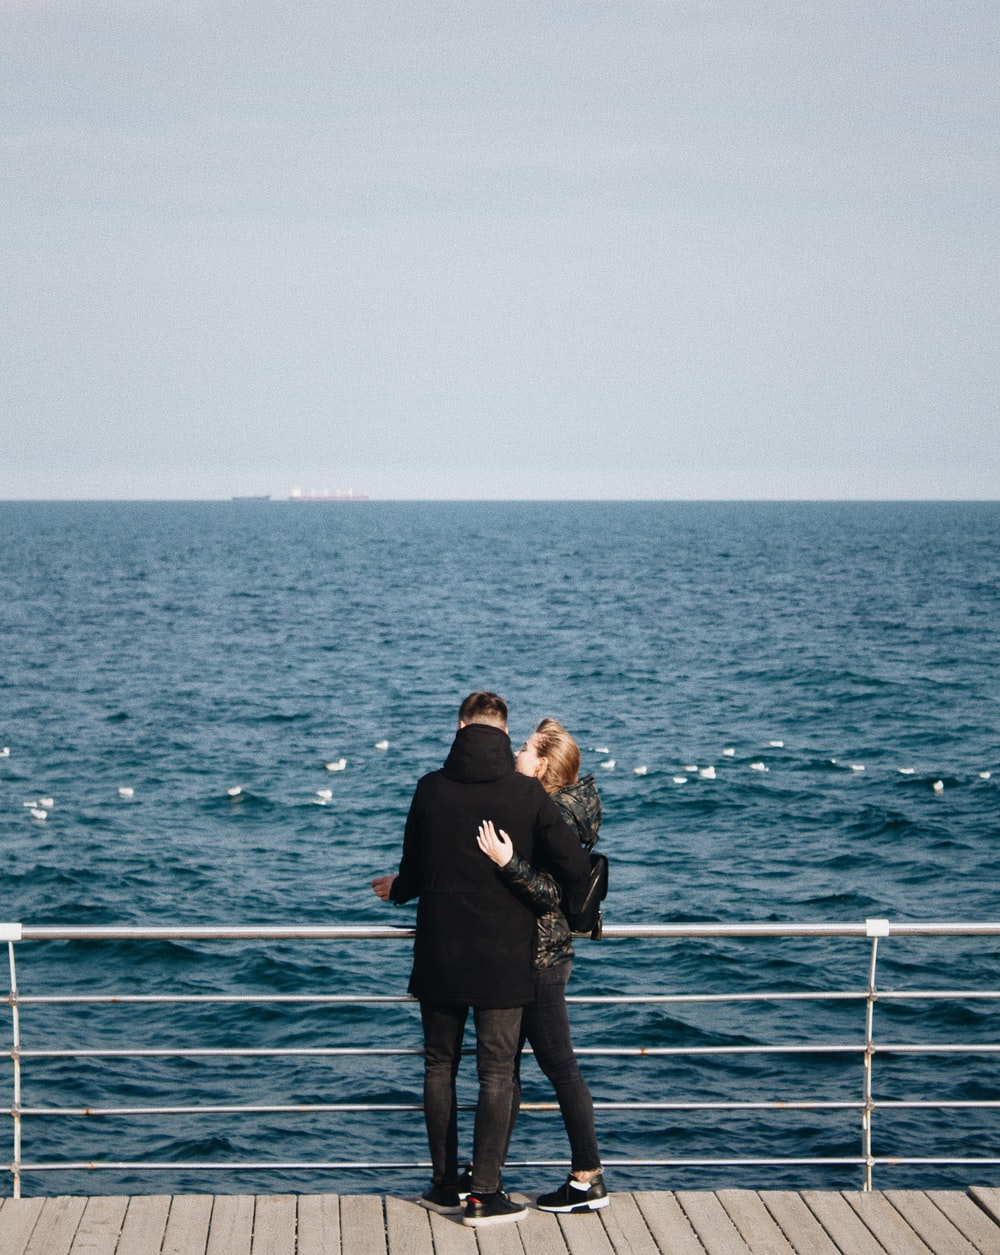 man and woman standing in front of body of water